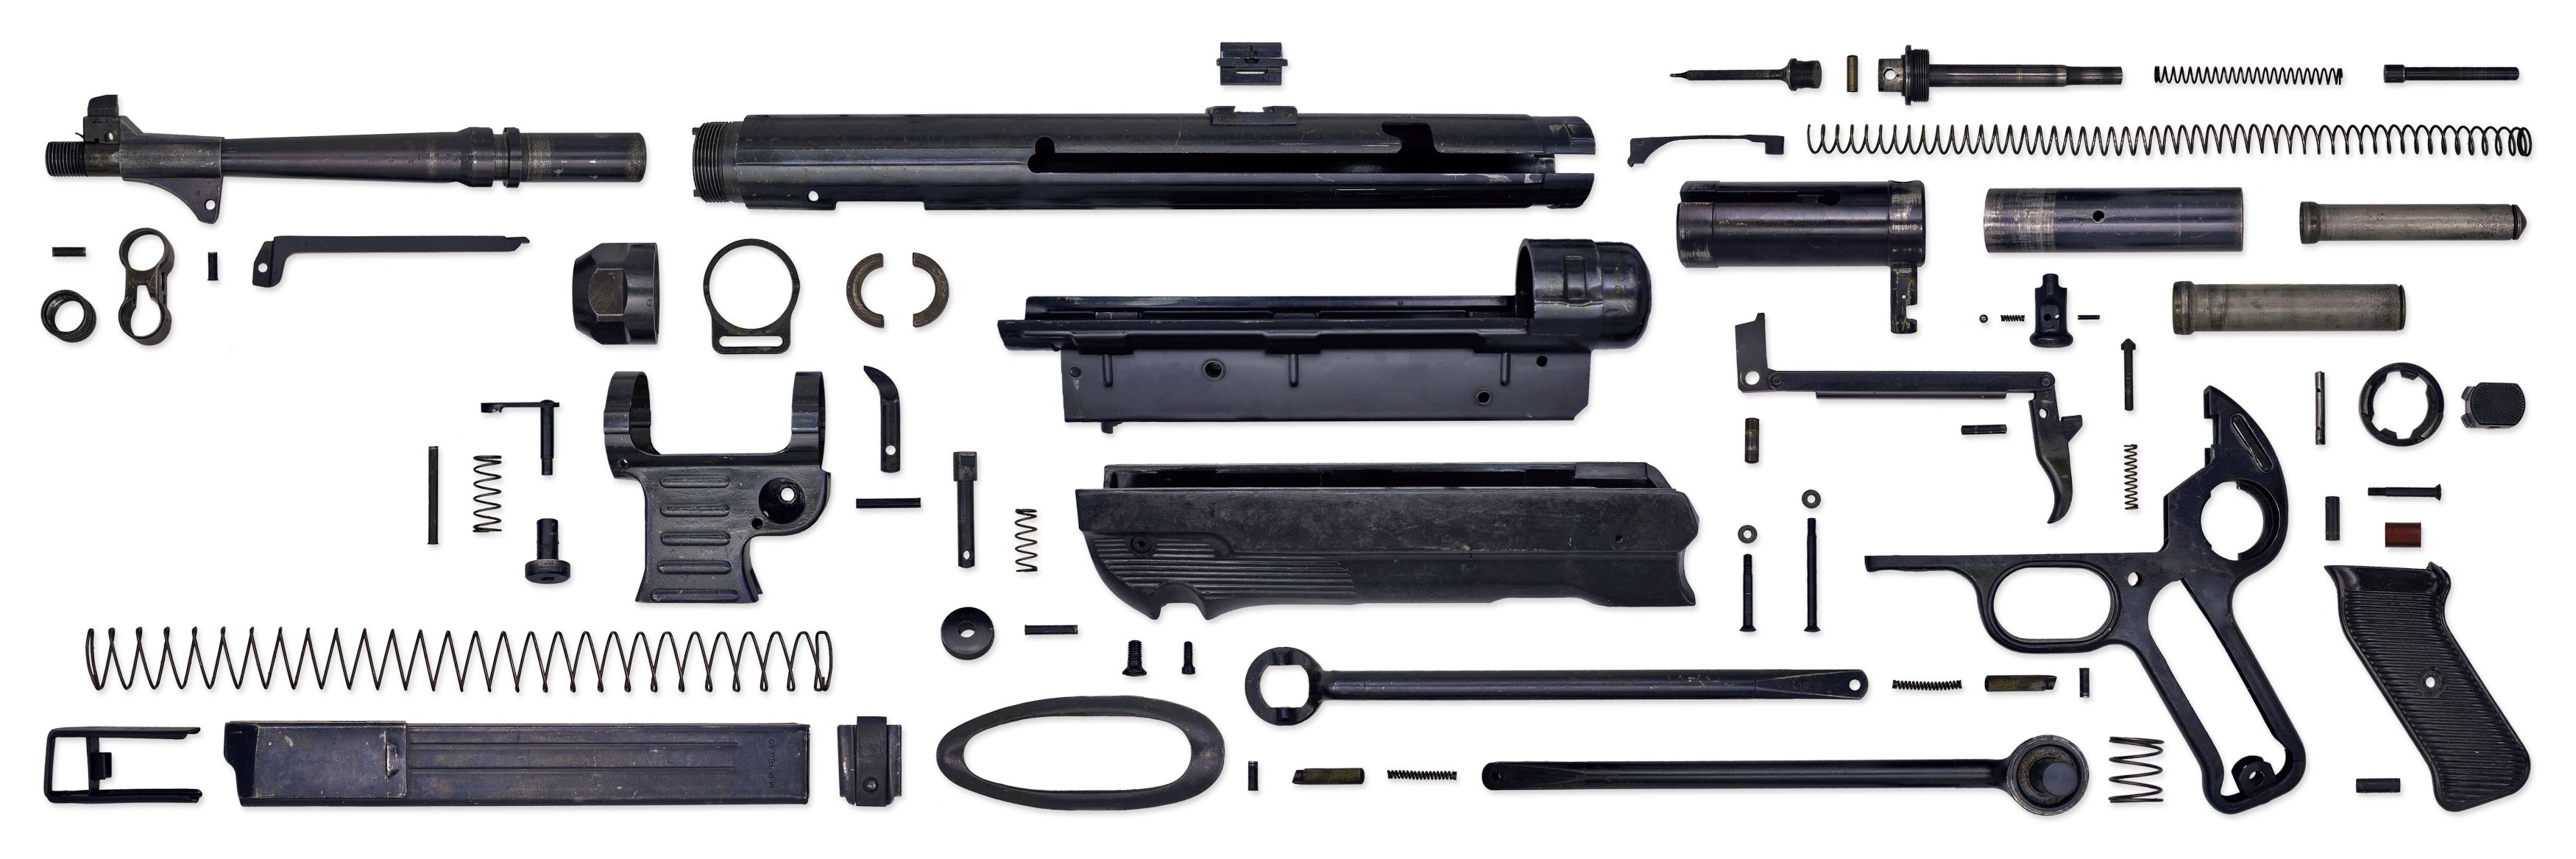 medium resolution of mp40 mp40 parts in detail